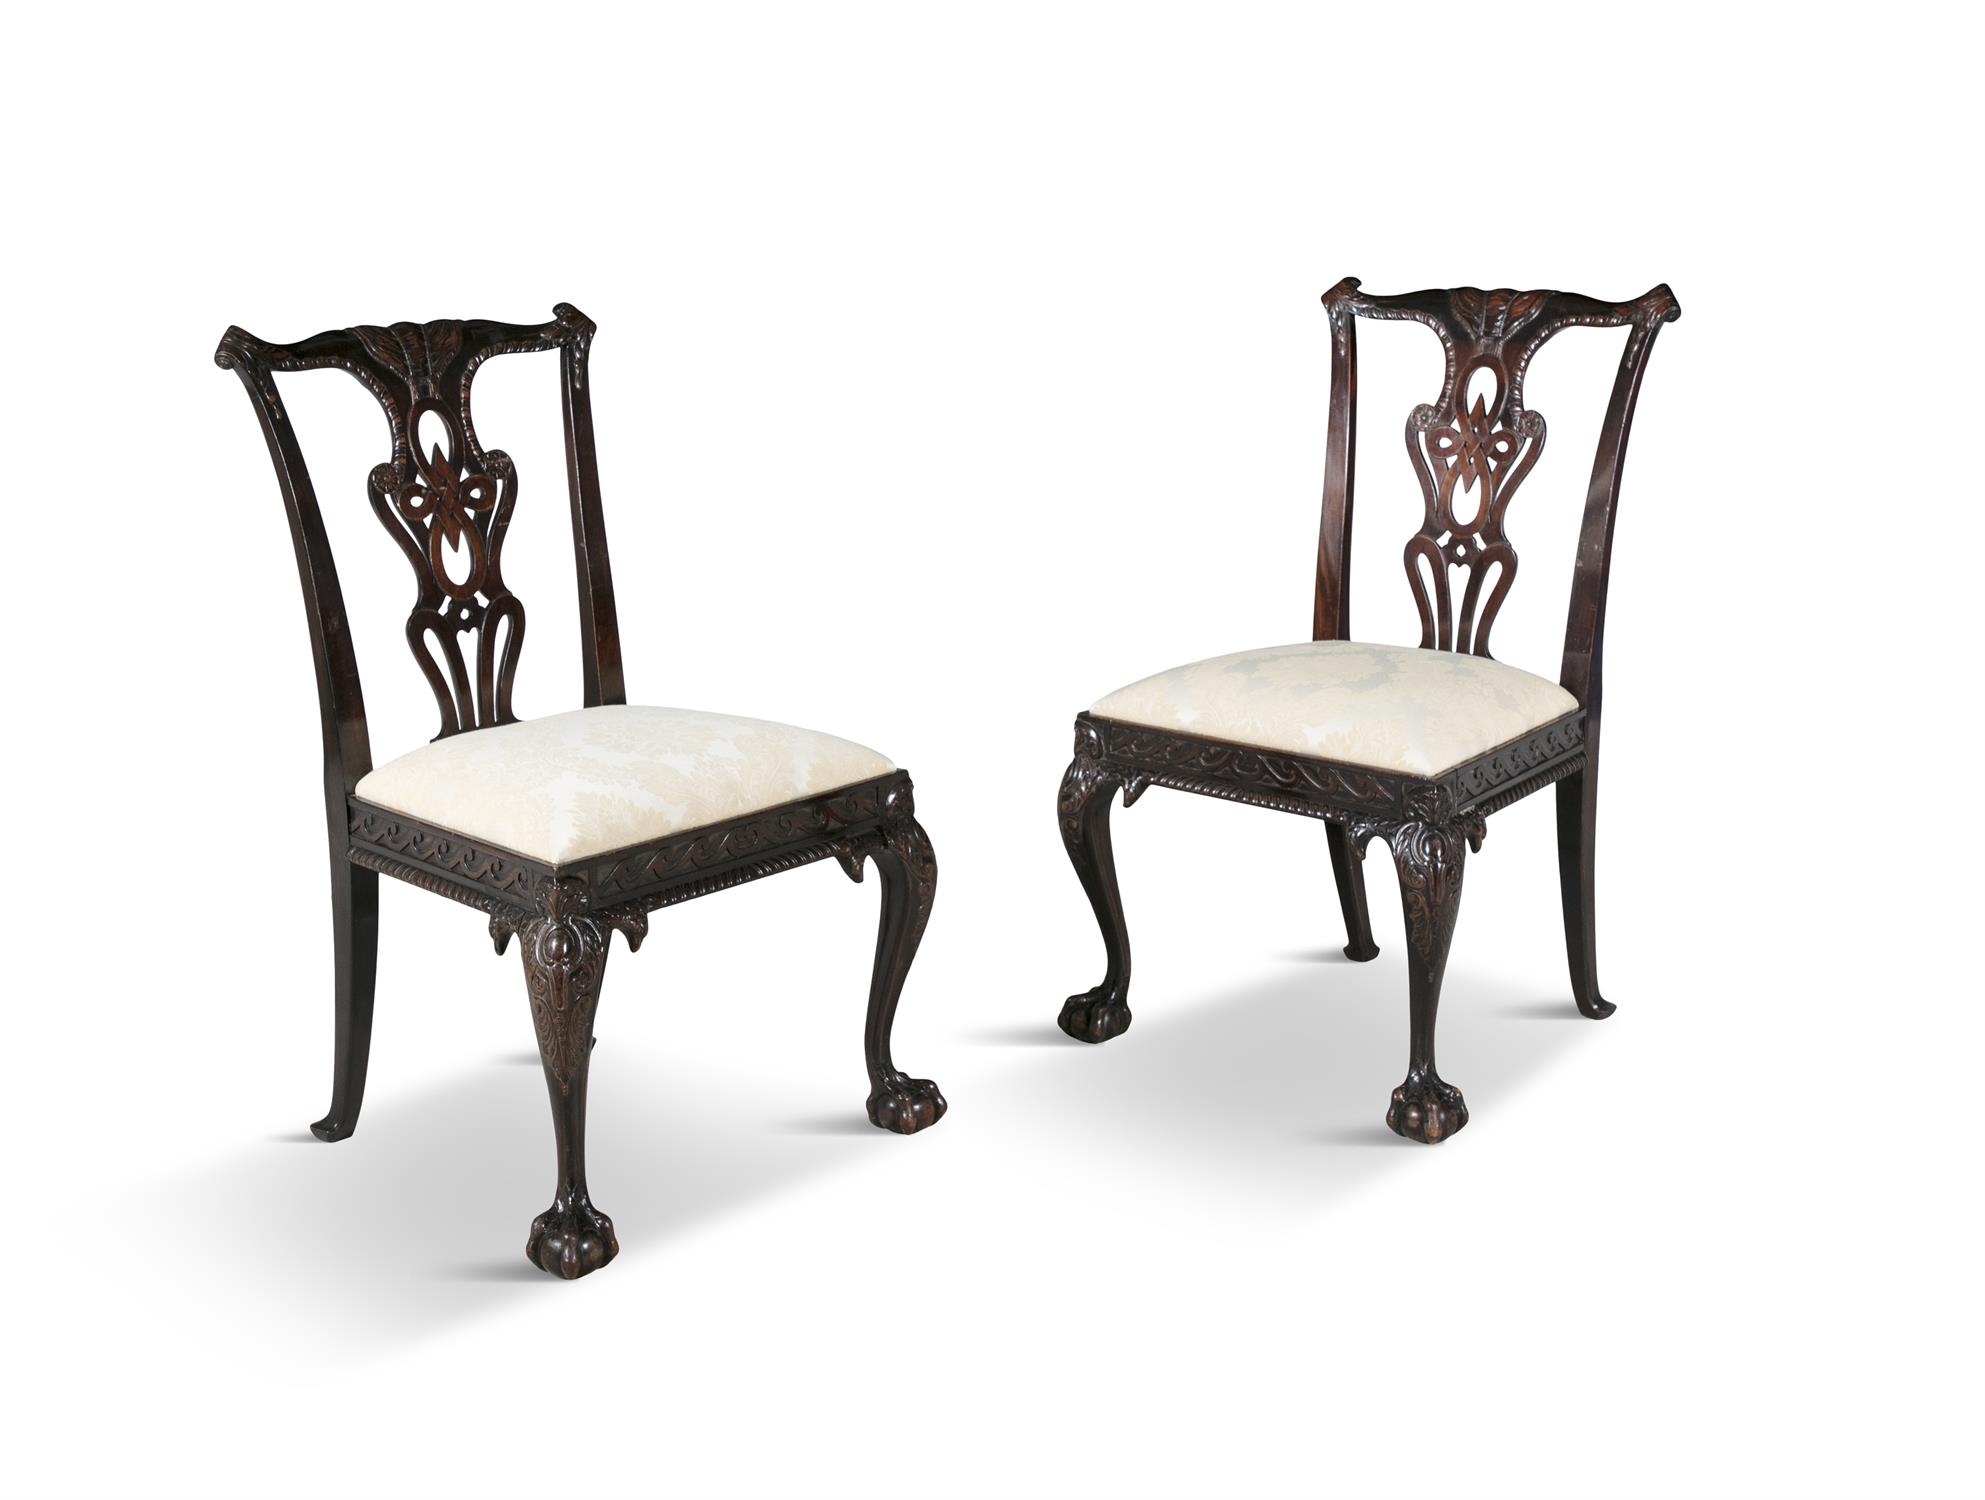 A PAIR OF GEORGIAN REVIVAL MAHOGANY DINING CHAIRS, 19th century, each with pierced vase shaped - Image 3 of 3